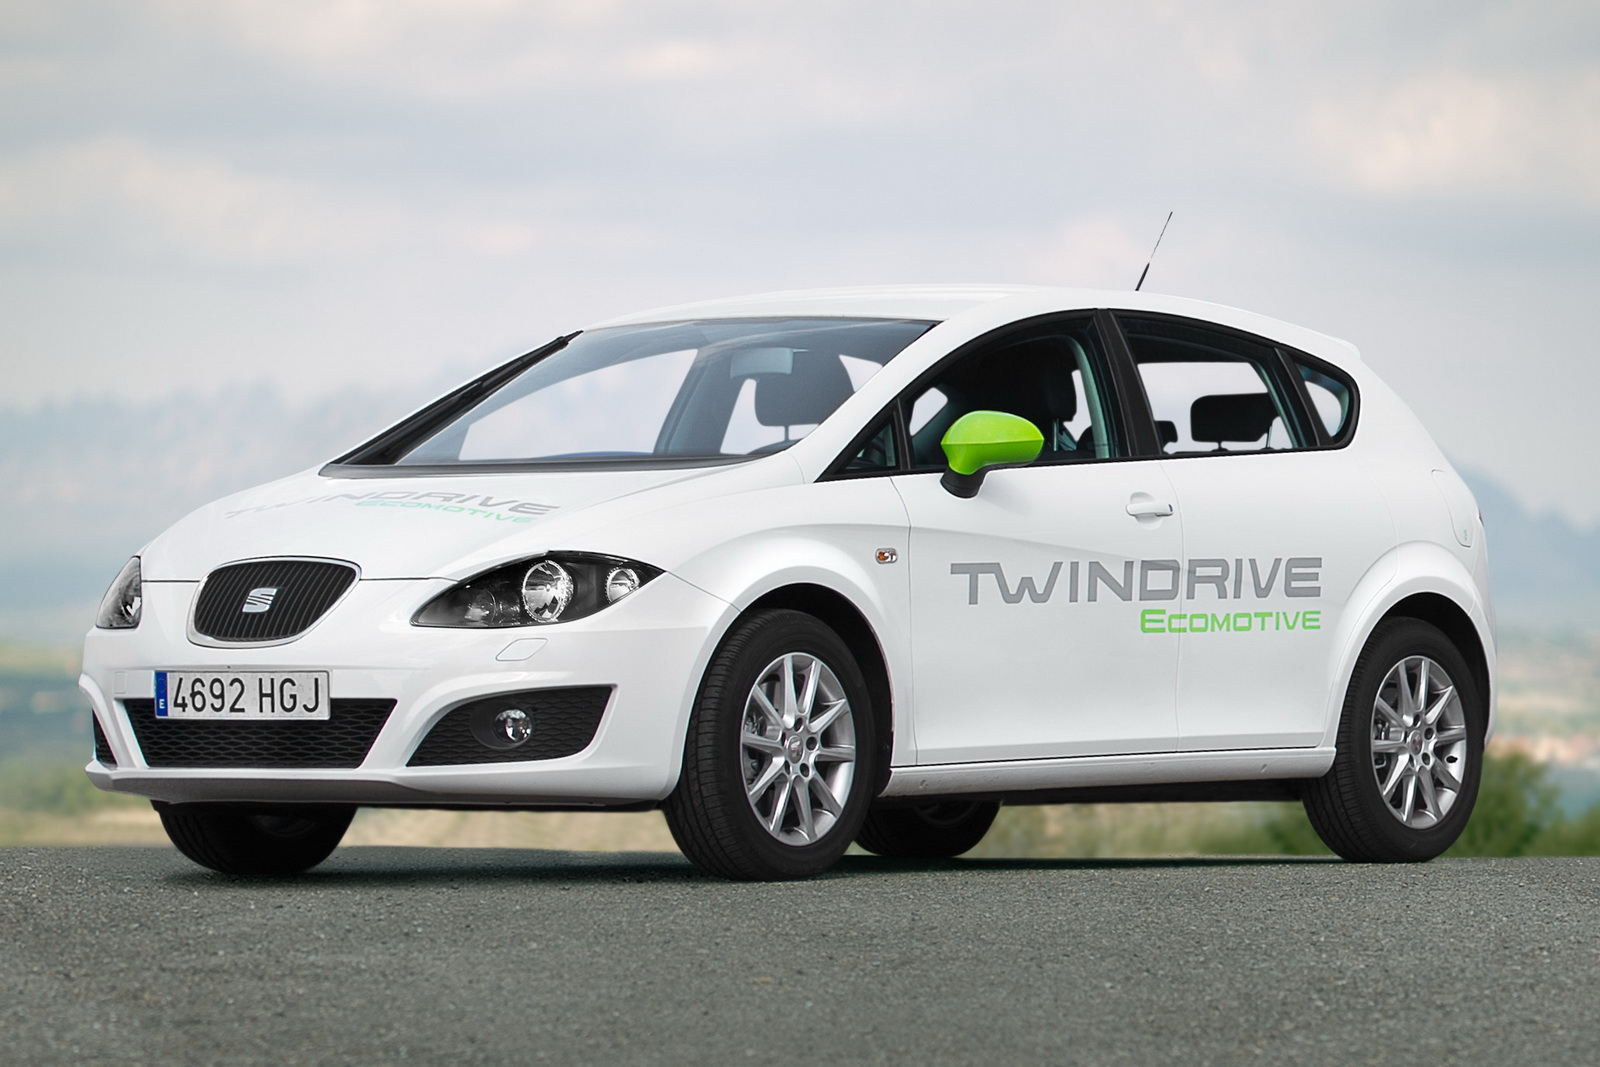 2012 Seat Pure Electric and Plug in Hybrid 5 Seat Wrapped off New Pure Electric and Plug in Hybrid Prototypes